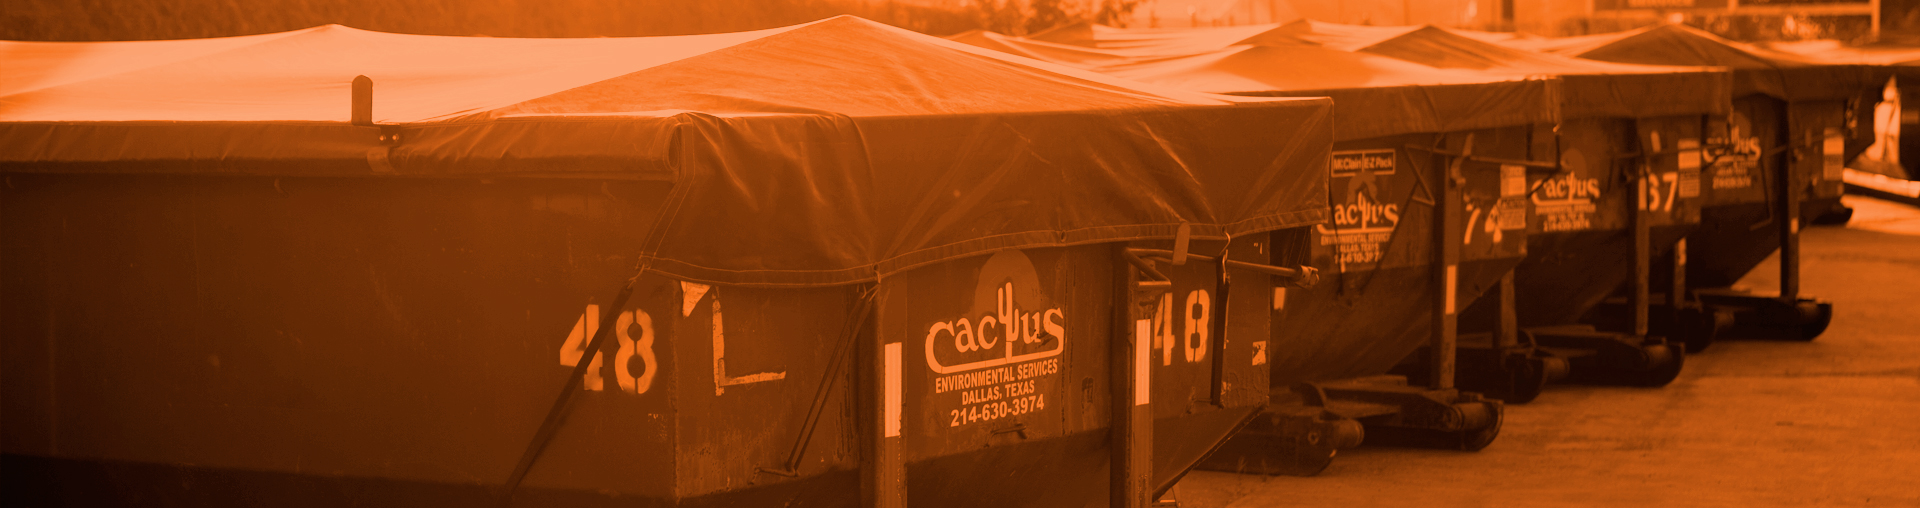 Cactus Environmental Vacuum Tanker and Hydroblasting Equipment Hazardous Waste Removal Services